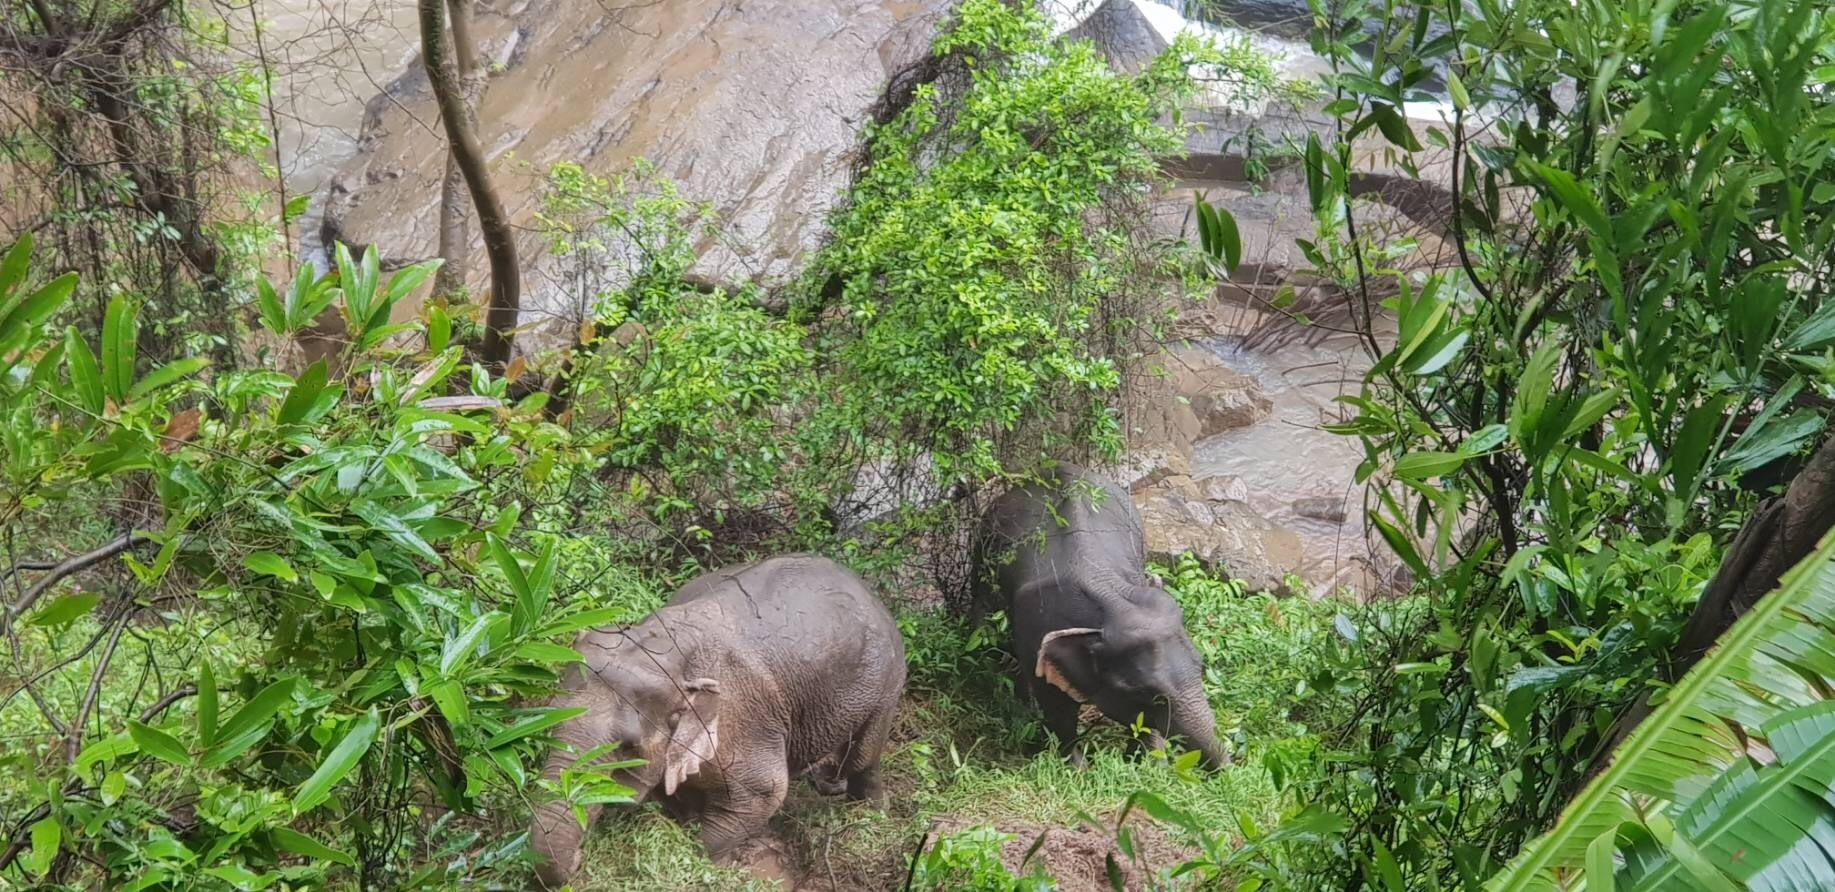 More dead wild elephants found at Thai waterfall; toll at 11